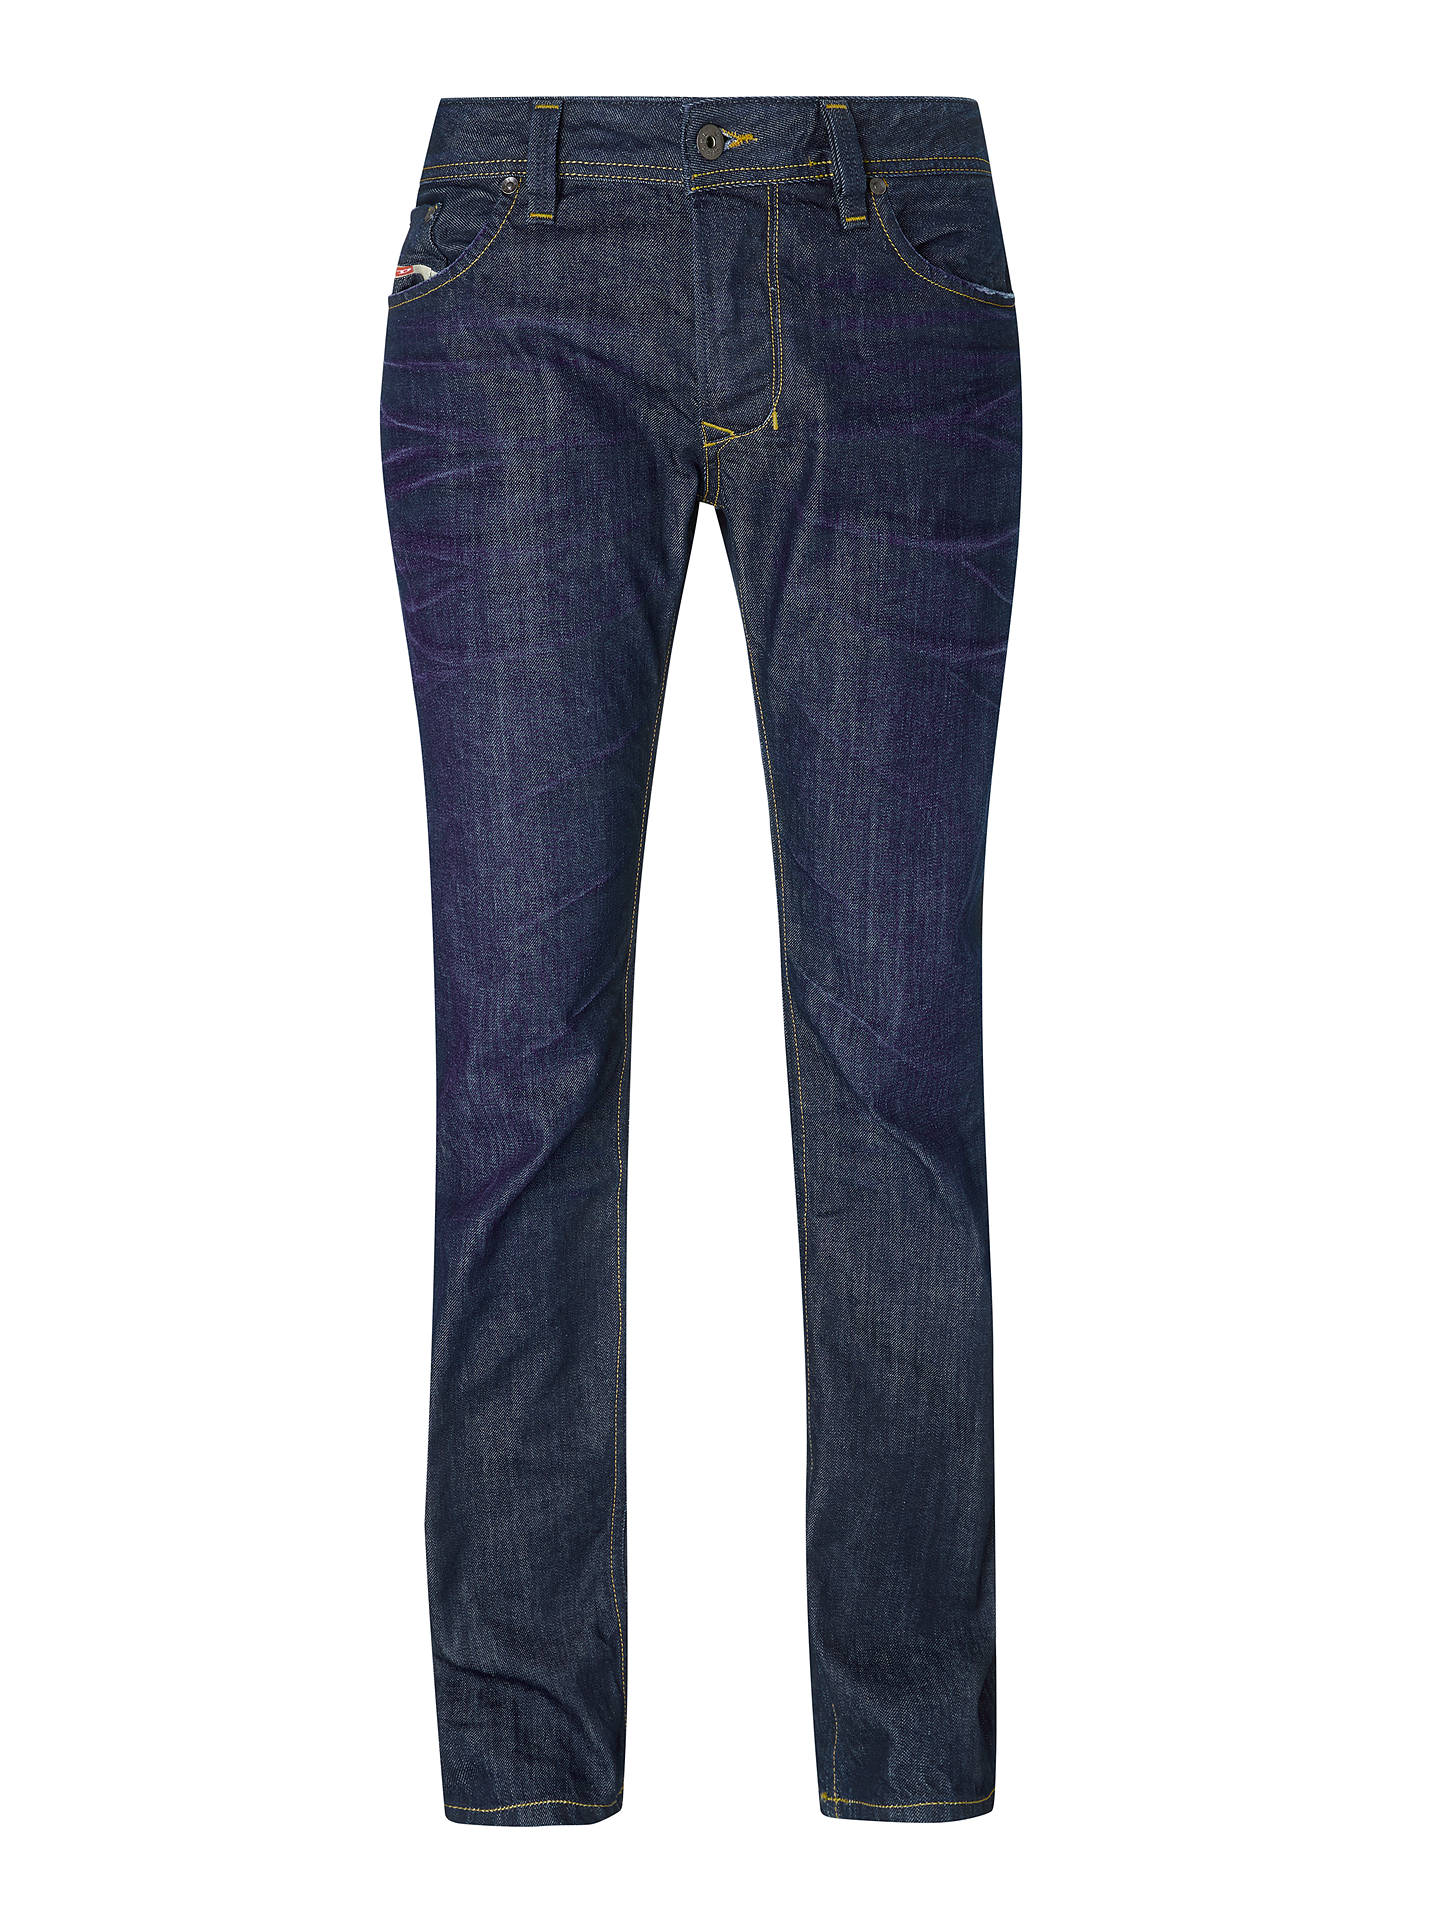 f854f096 ... Buy Diesel Larkee Straight Jeans, Mid Wash 806W, 32S Online at  johnlewis.com